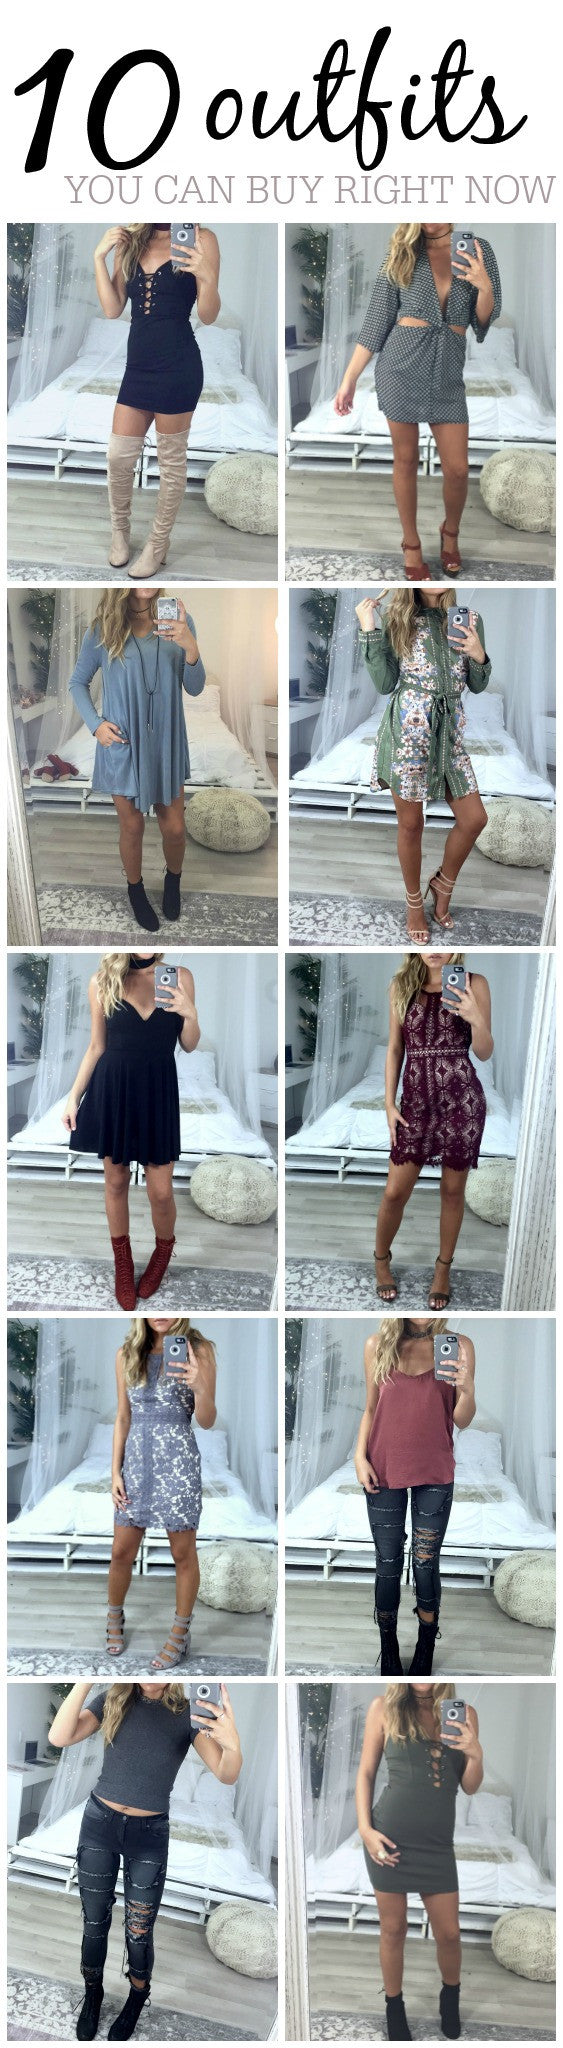 10 Outfits You Can Buy Right Now!